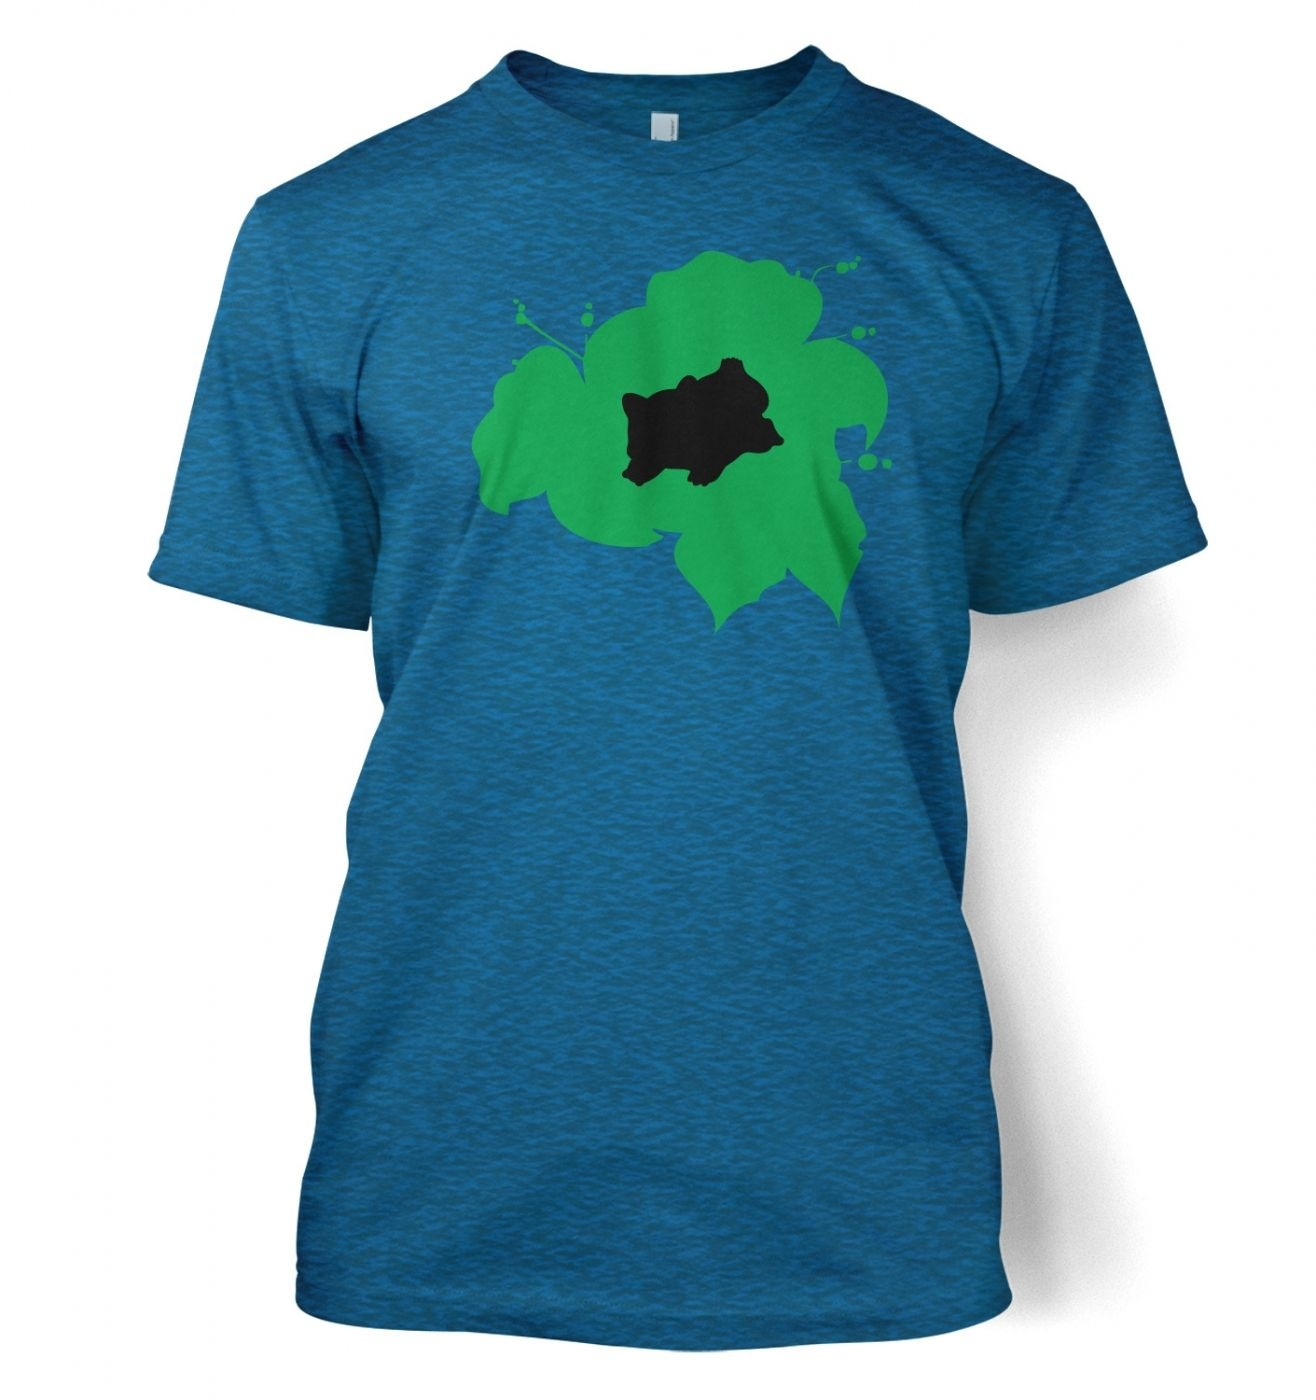 Green Bulbasaur Silhouette T-Shirt - Inspired by Pokemon